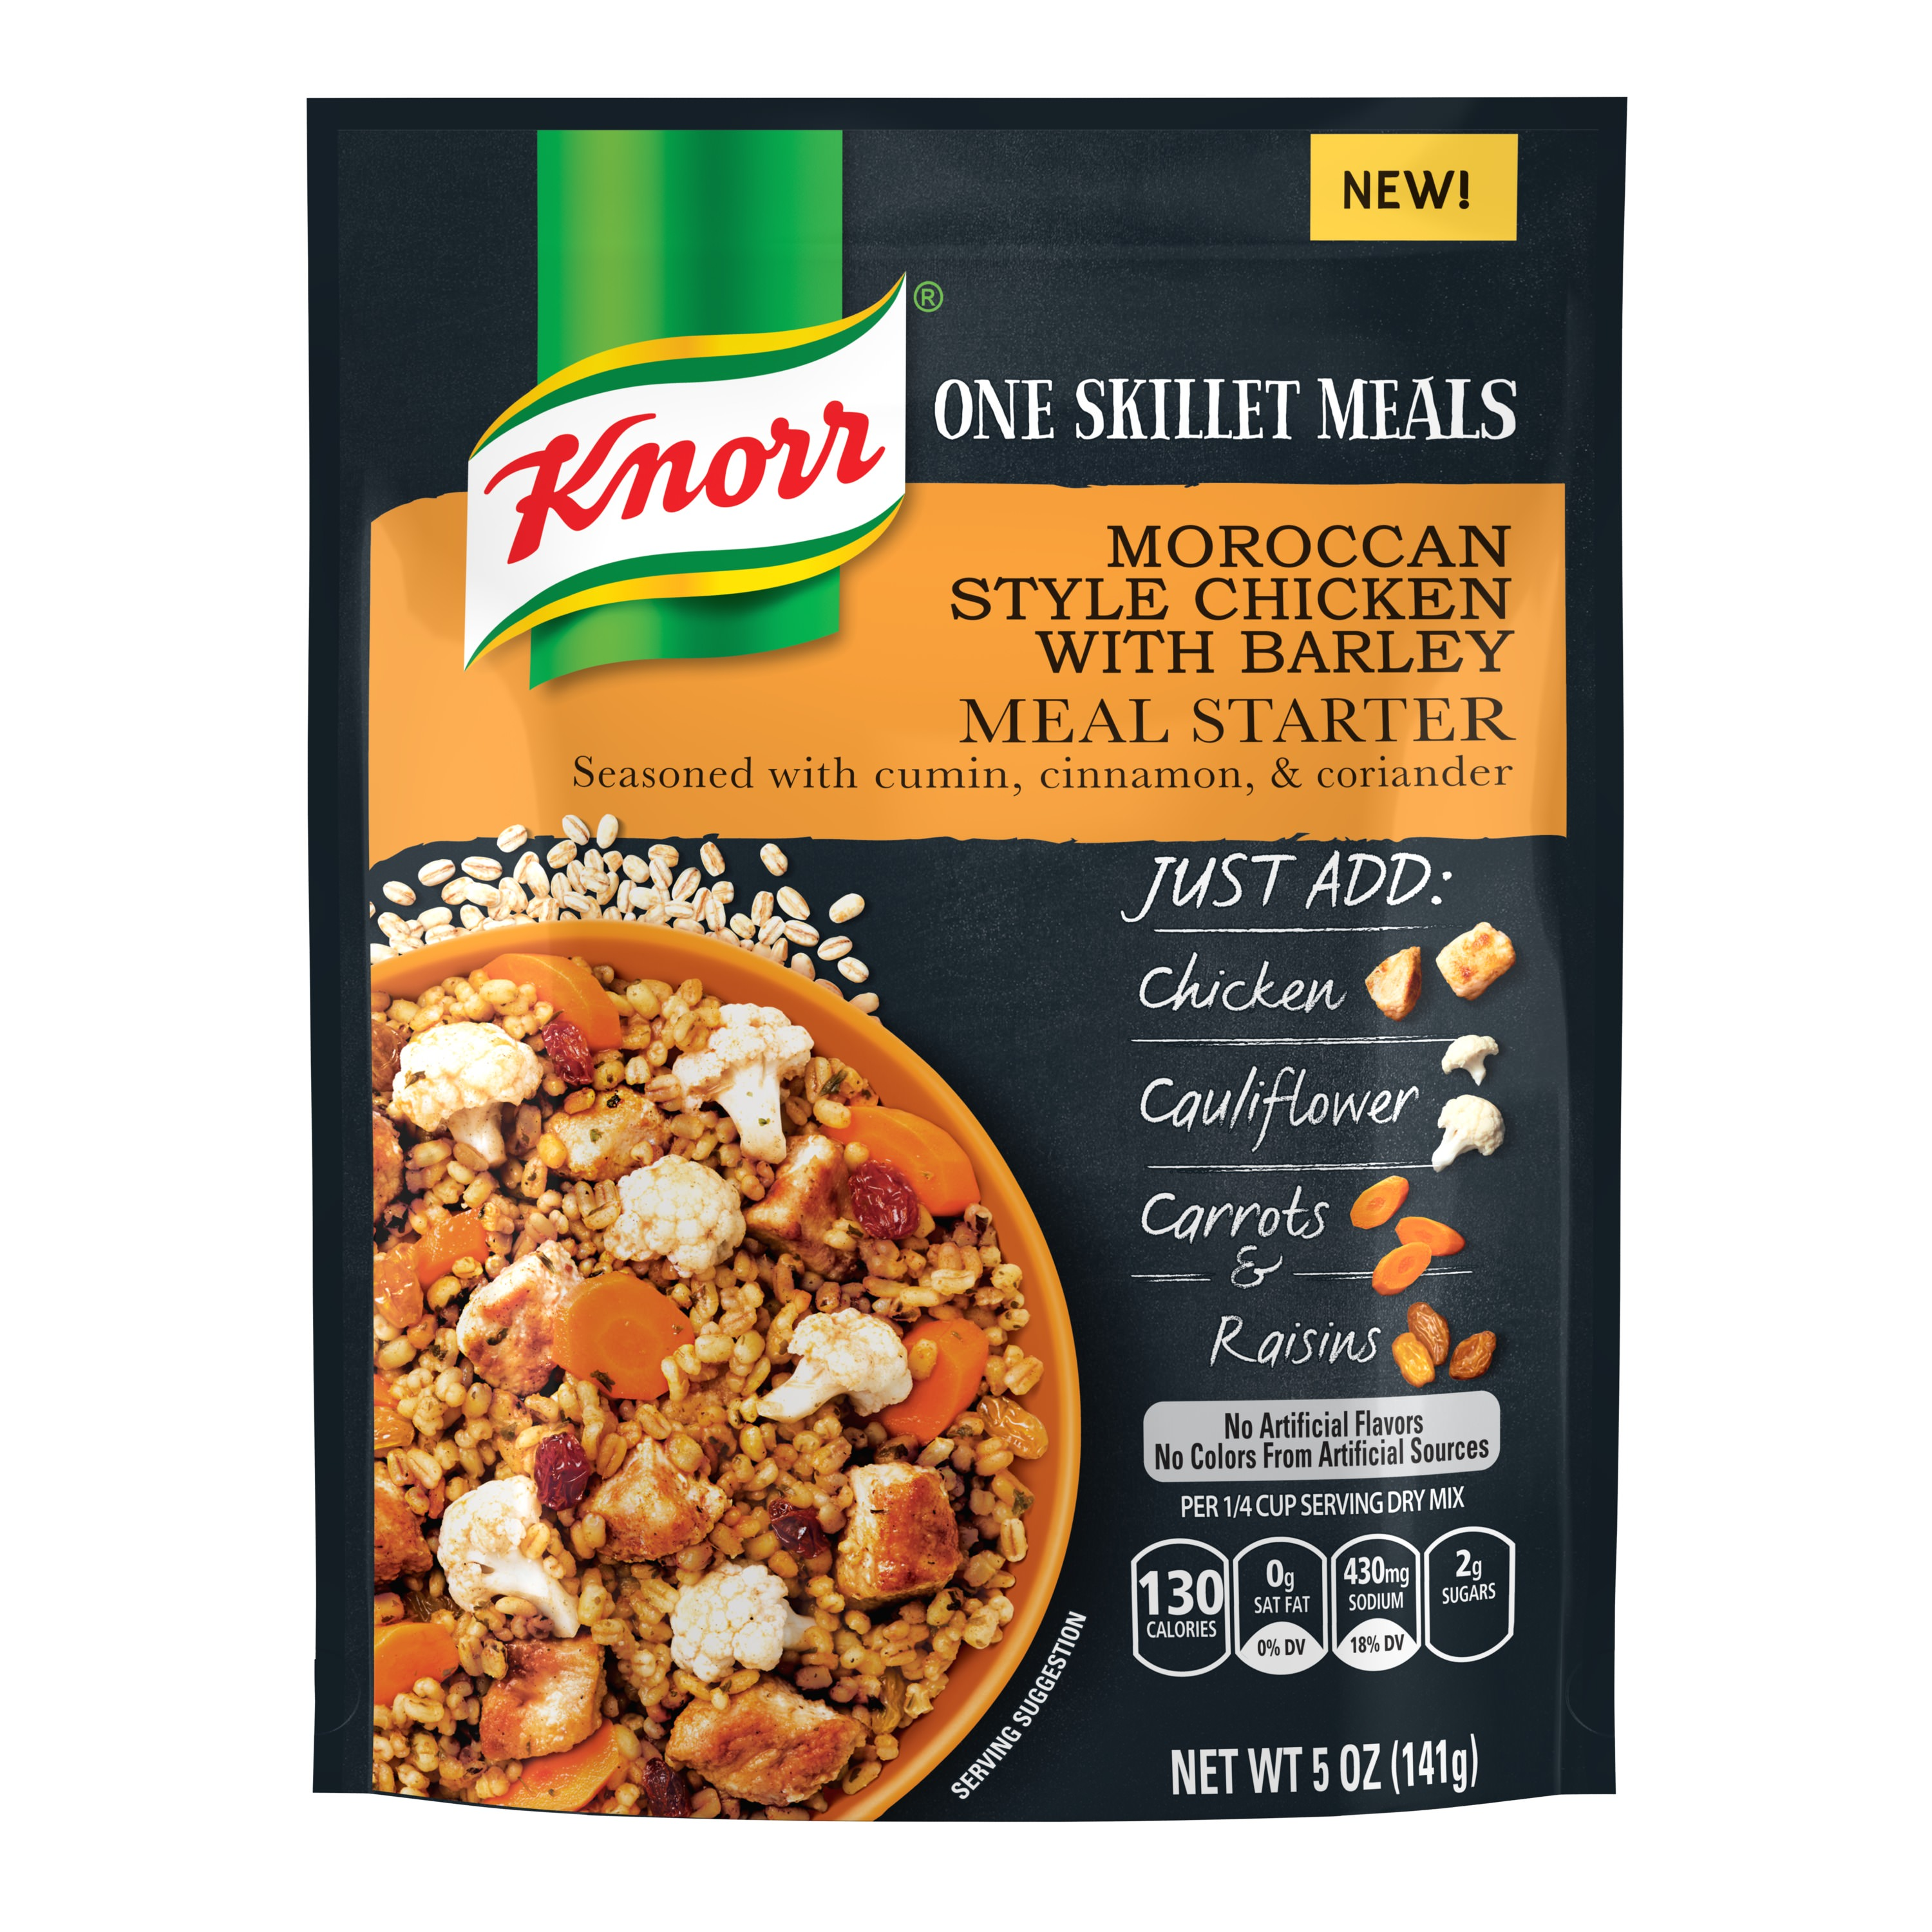 Knorr One Skillet Meals Meal Starter Moroccan Style Chicken with Barley 5 oz